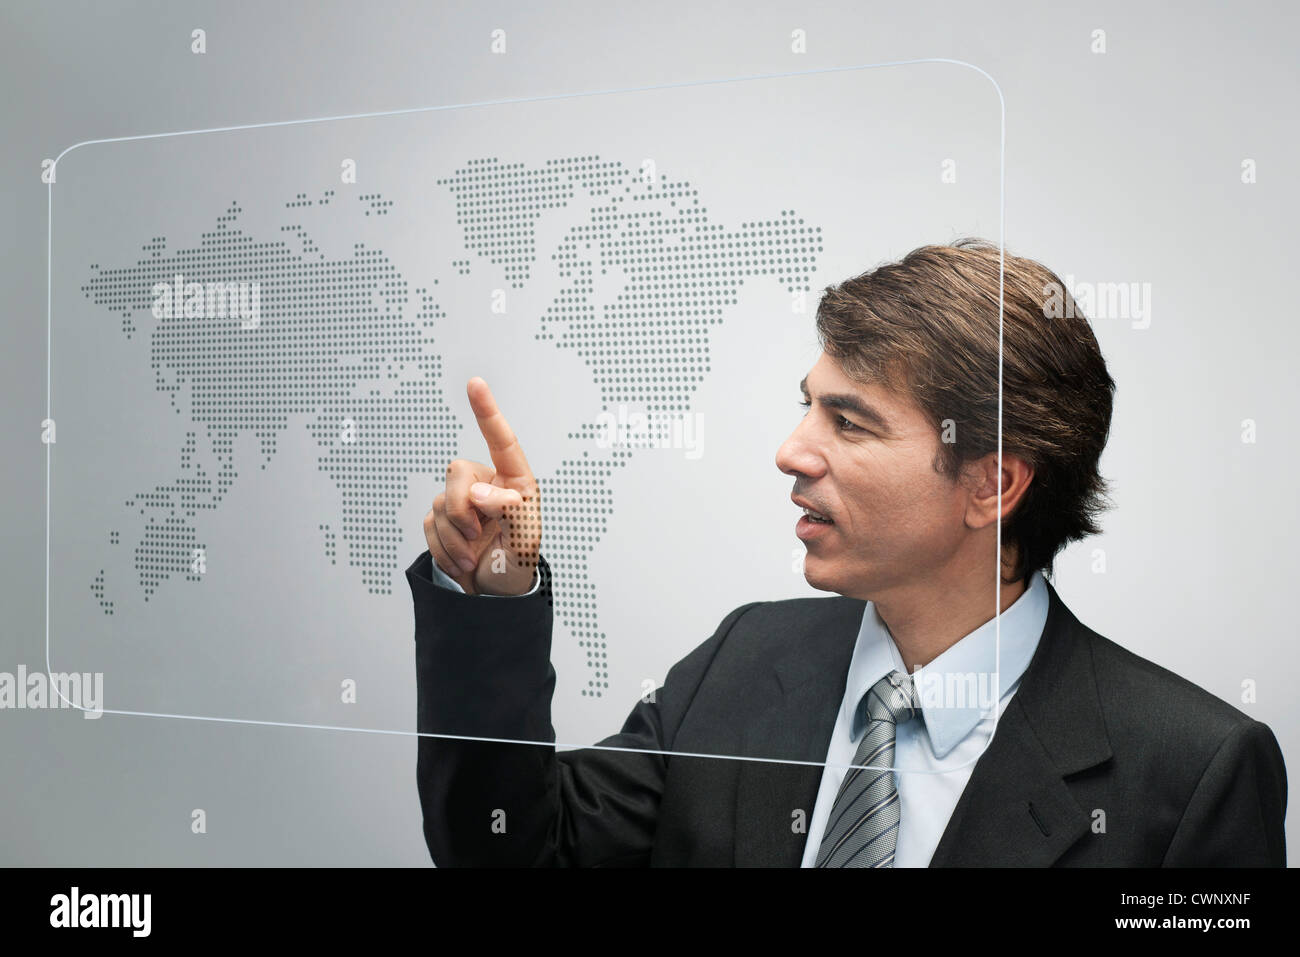 Businessman using advanced touch screen technology to view world map - Stock Image